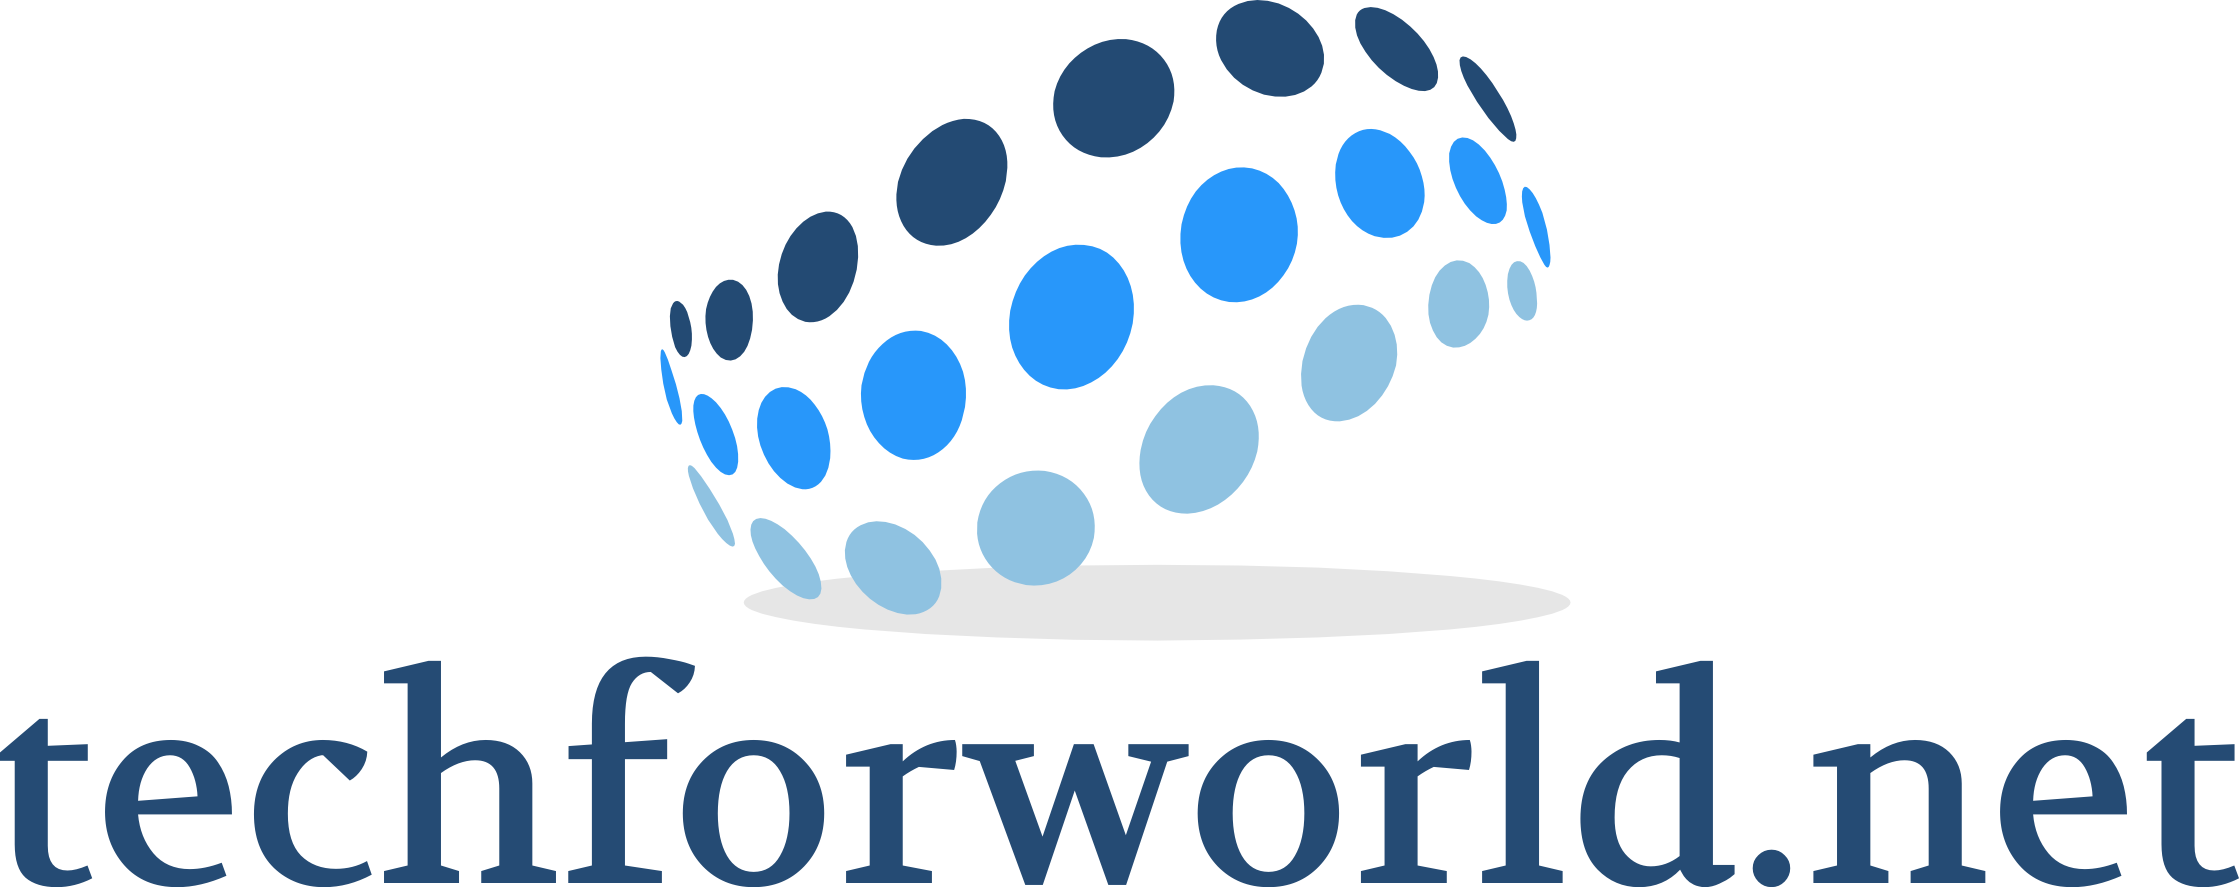 techforworld.net